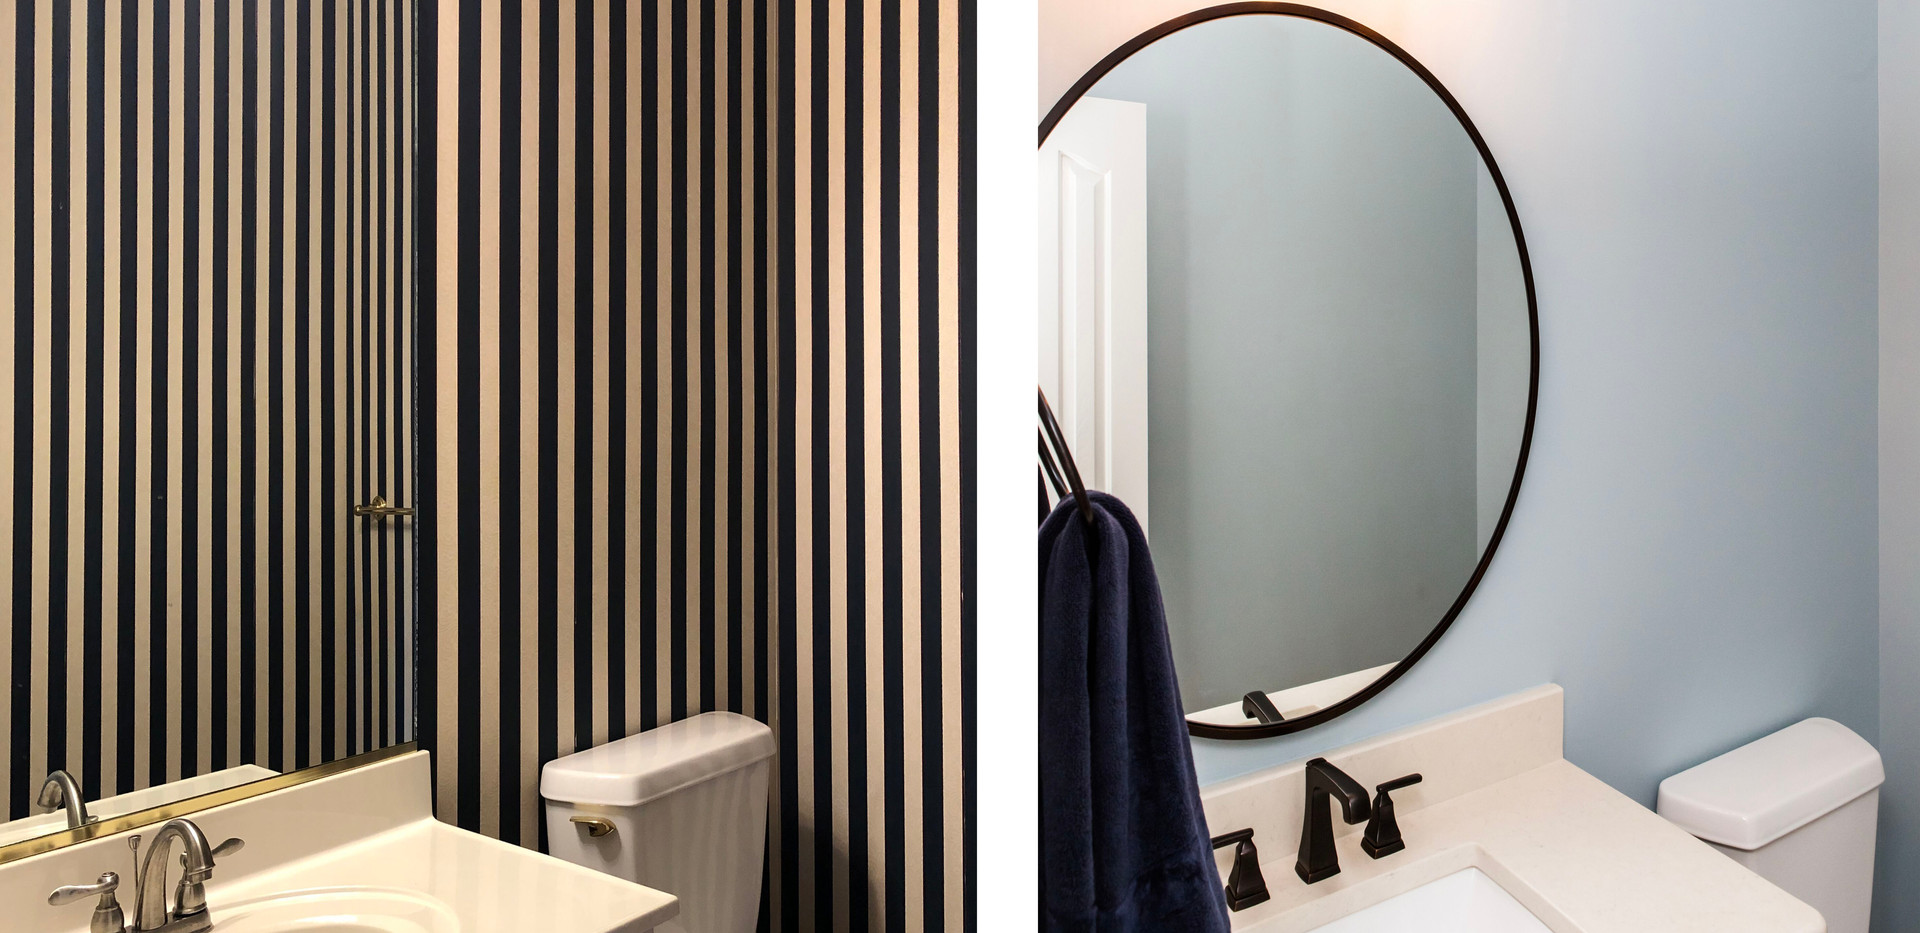 Powder Room Before and After